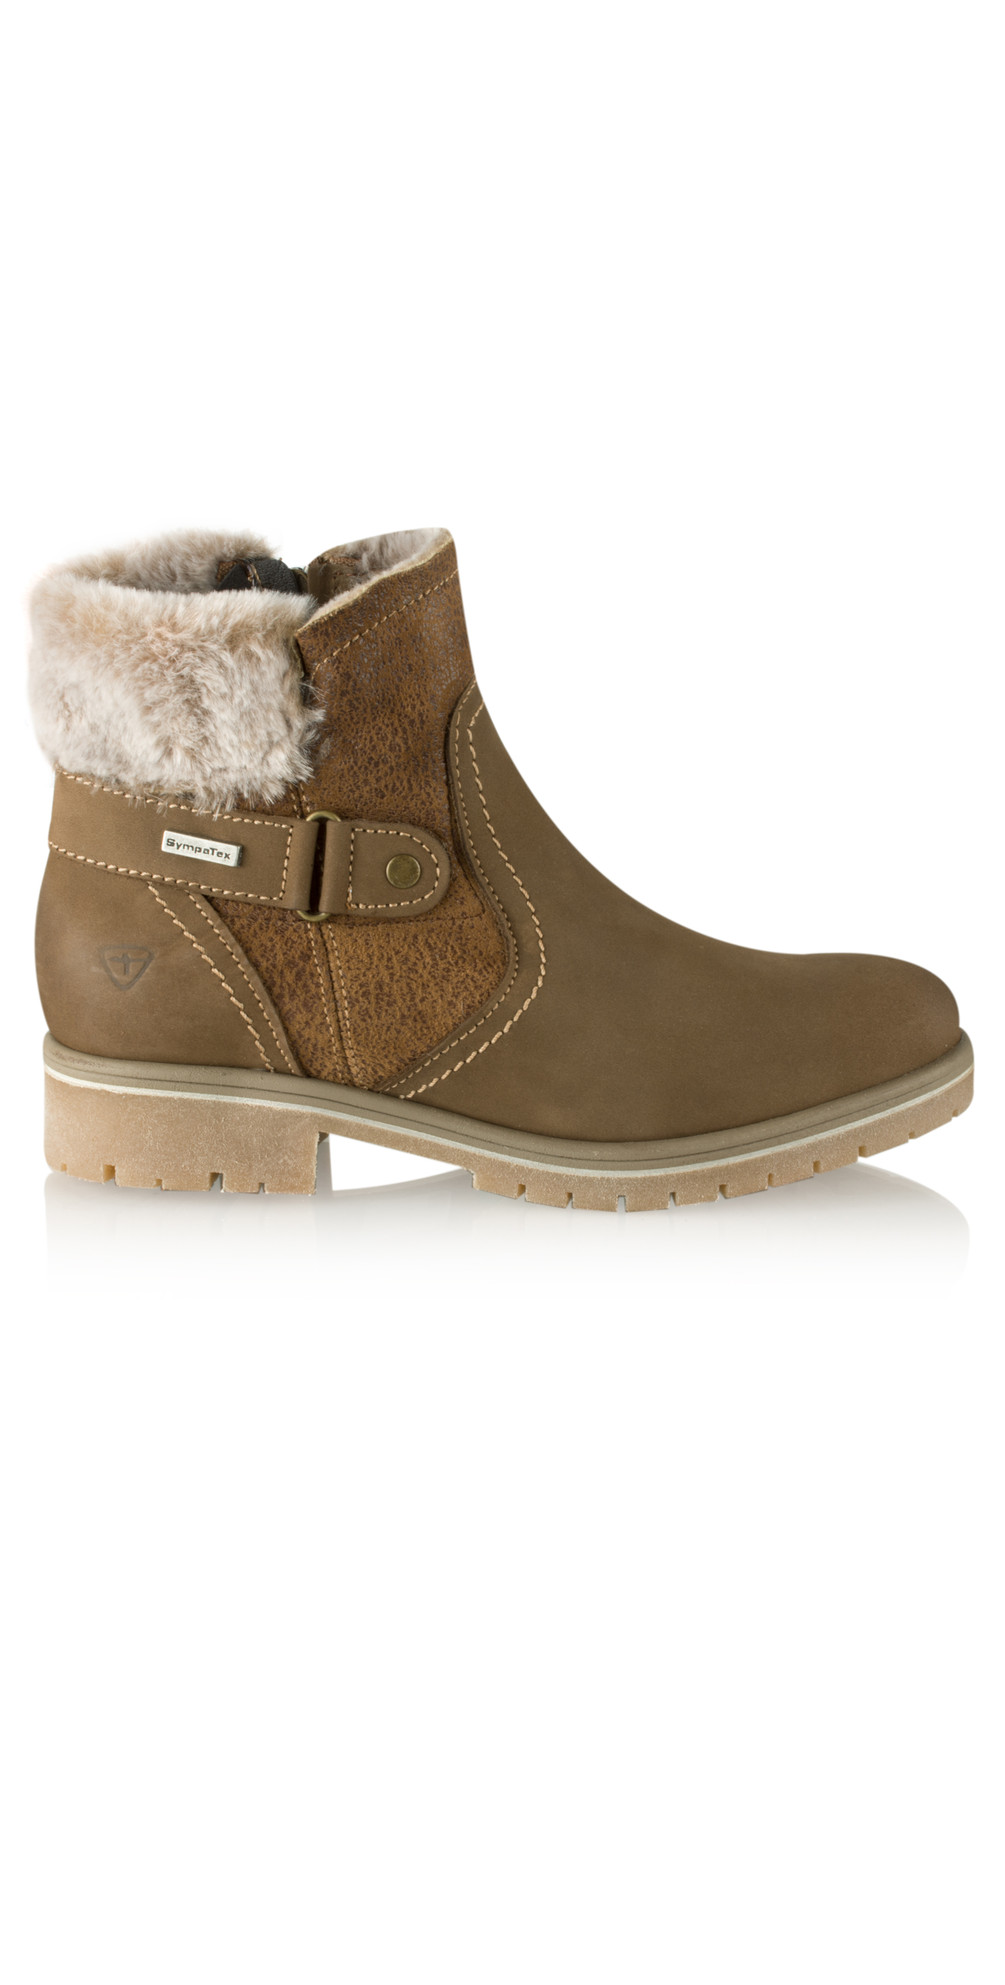 Leather Sympatex Water Resistant Ankle Boot main image